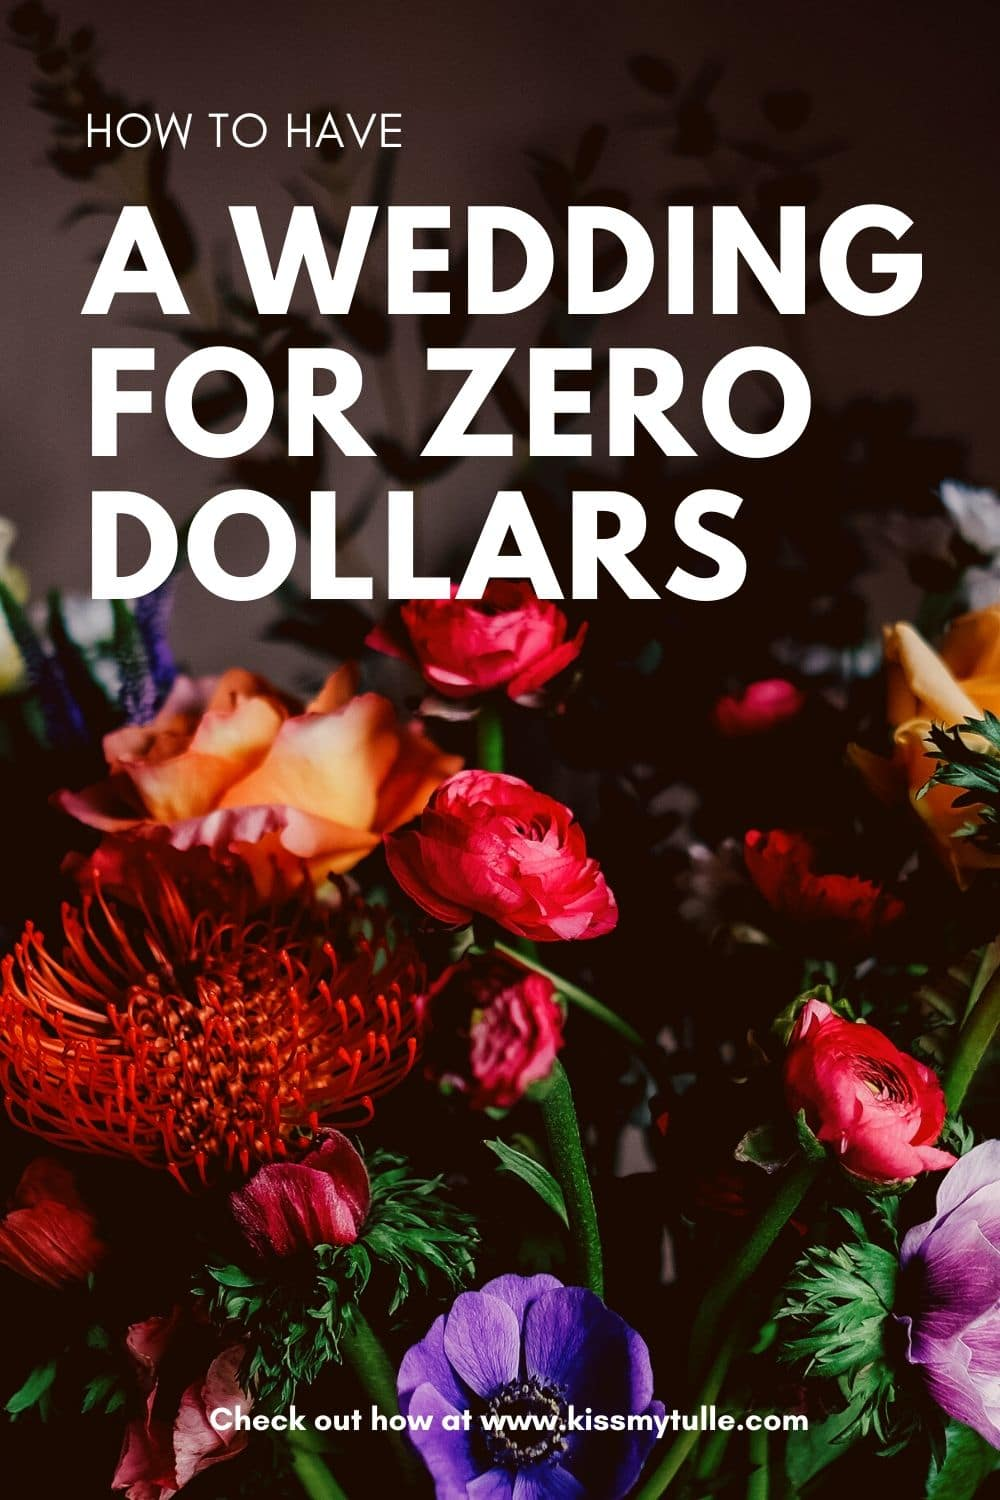 Yes! You can have a wedding for ZERO DOLLARS. Let Alaskan blogger, Kiss My Tulle, show you how you can have a Big Day that costs you nothing.